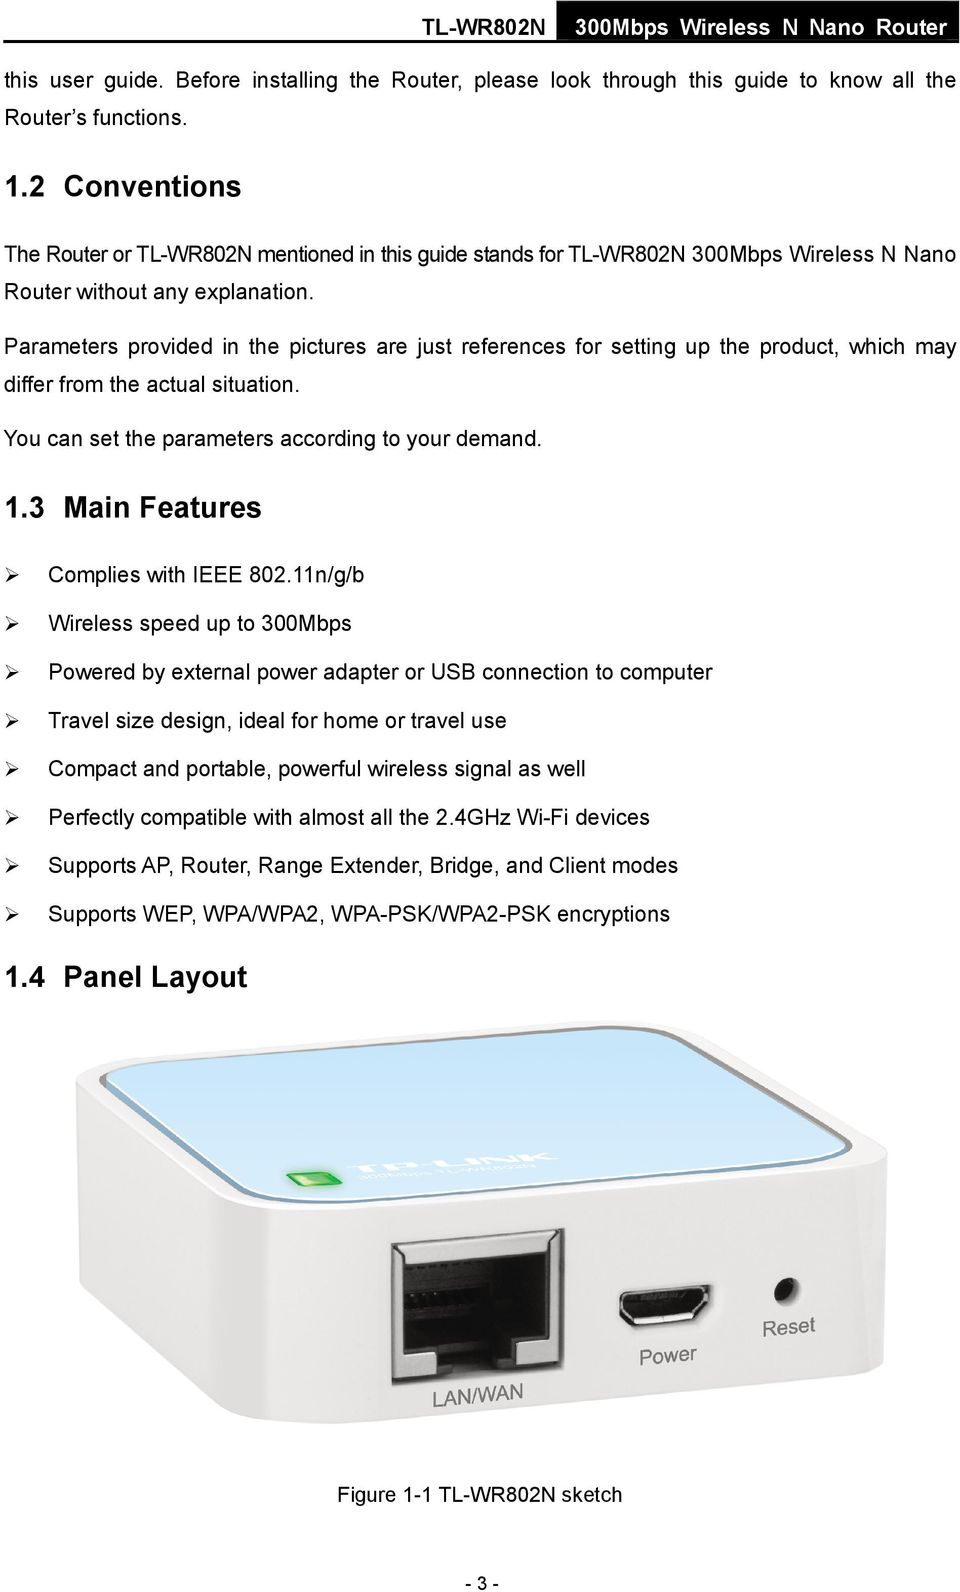 TL-WR802N 300Mbps Wireless N Nano Router - PDF